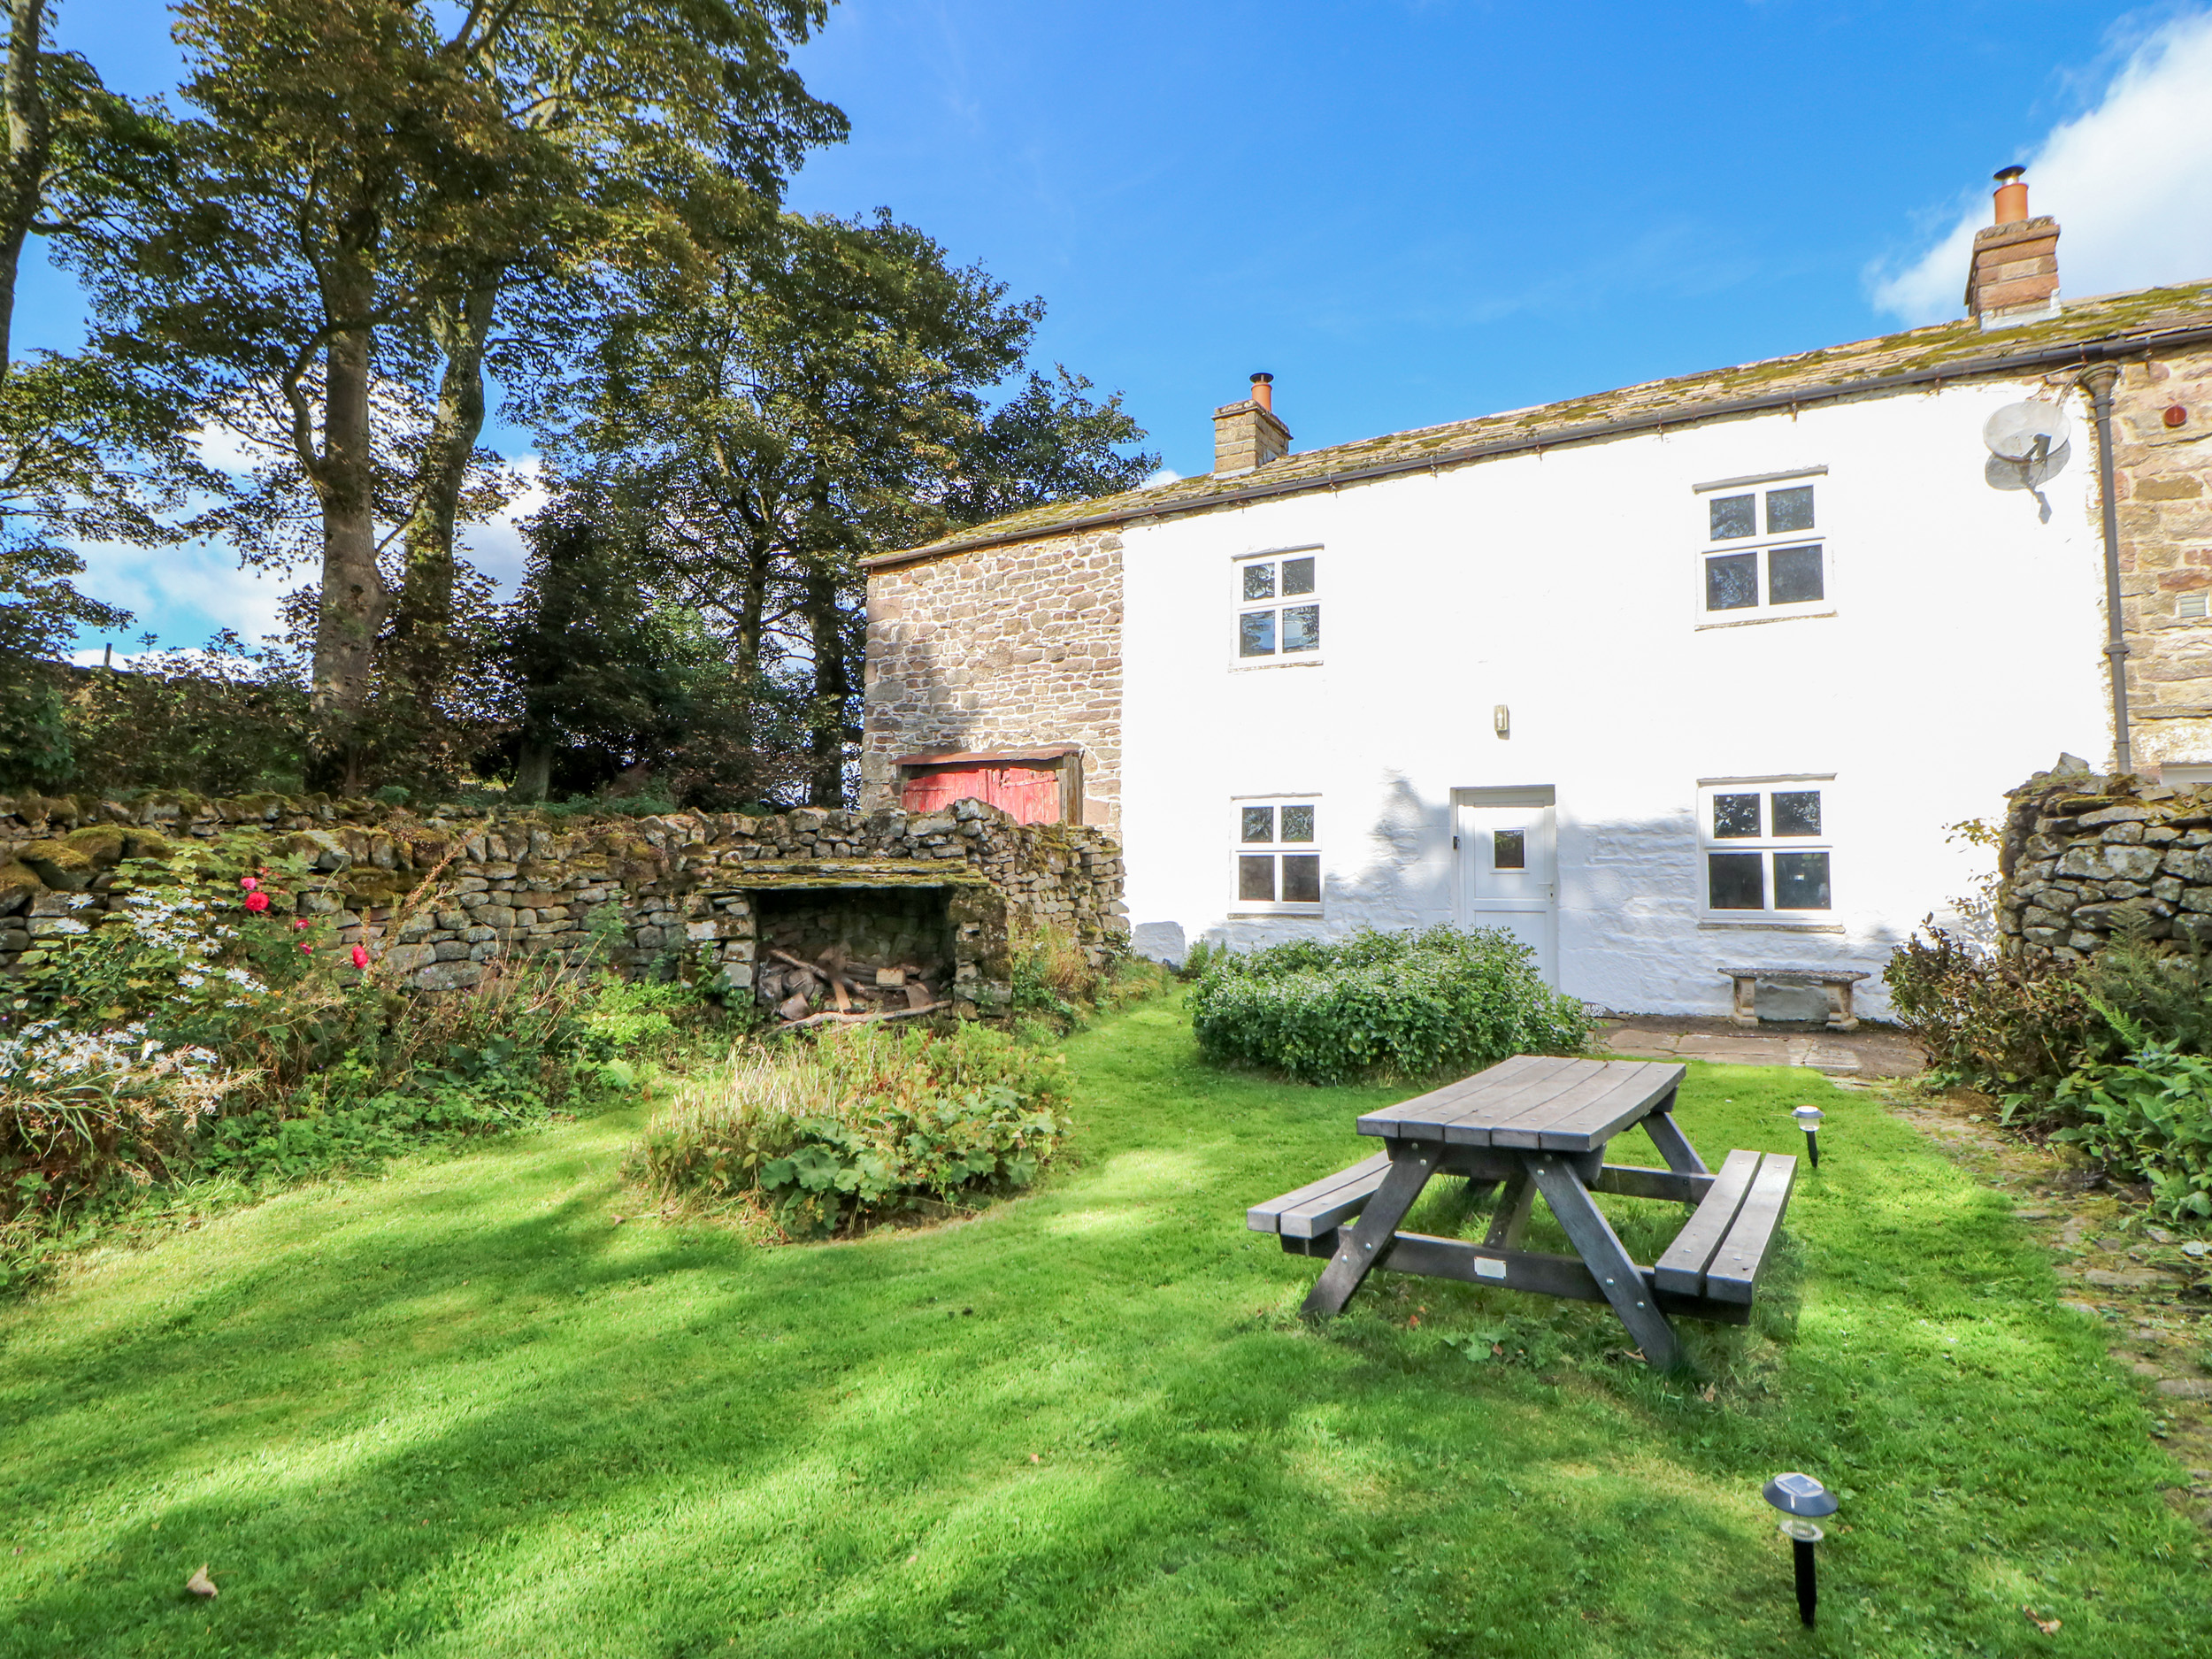 Cottage in Kirkby Stephen, Cumbria